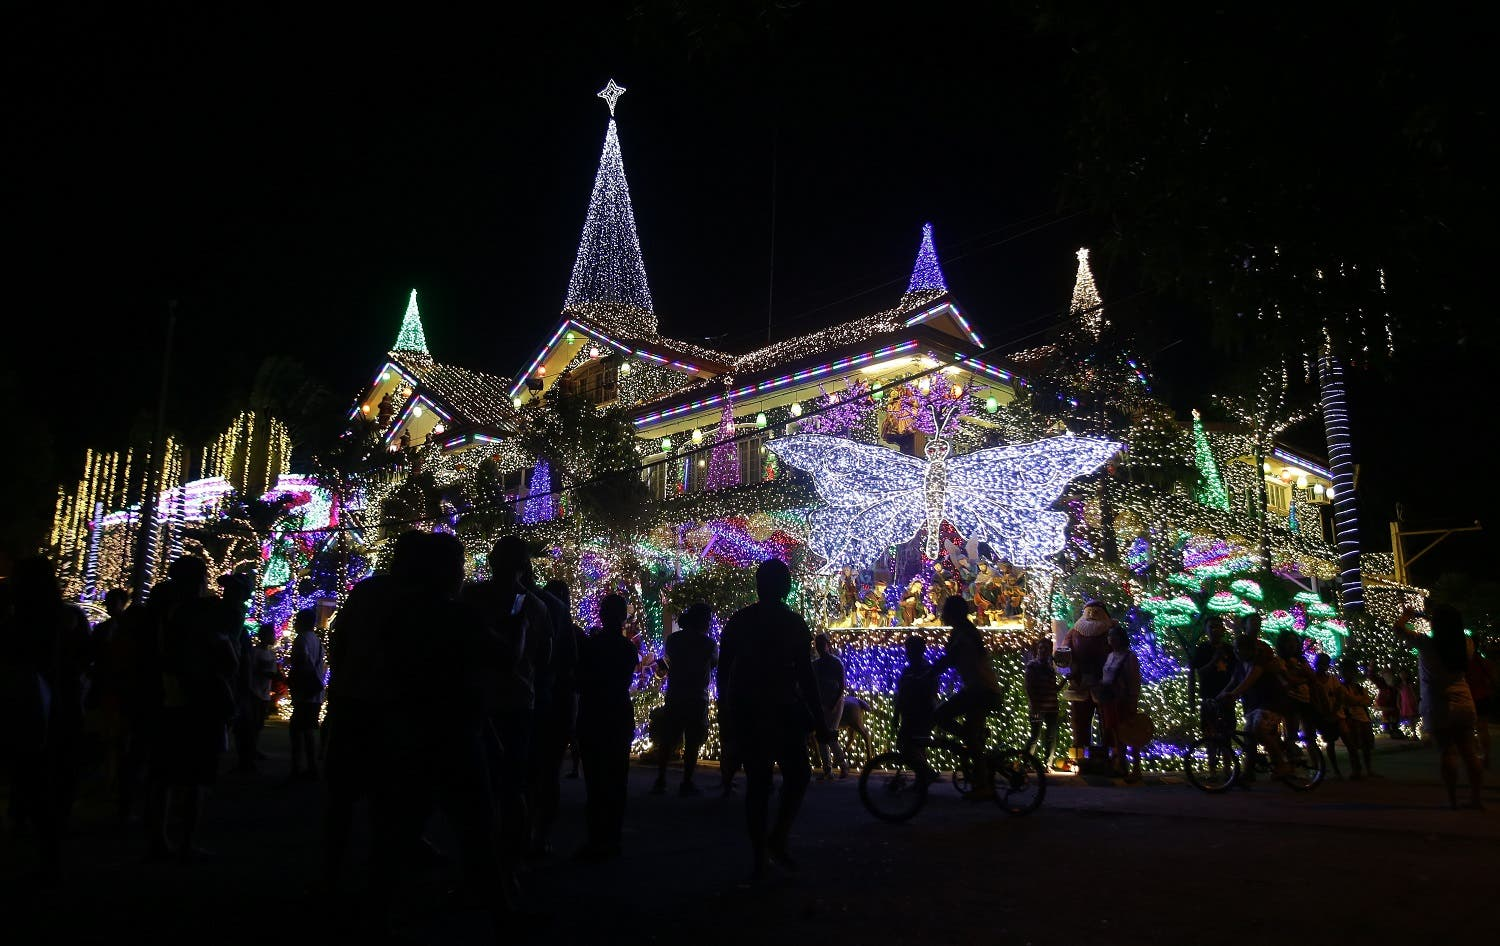 The house is drawing huge crowds, especially during weekends, with visitors using the bright lights and festive Christmas decors as their backdrop for selfies with families and friends. (AP)